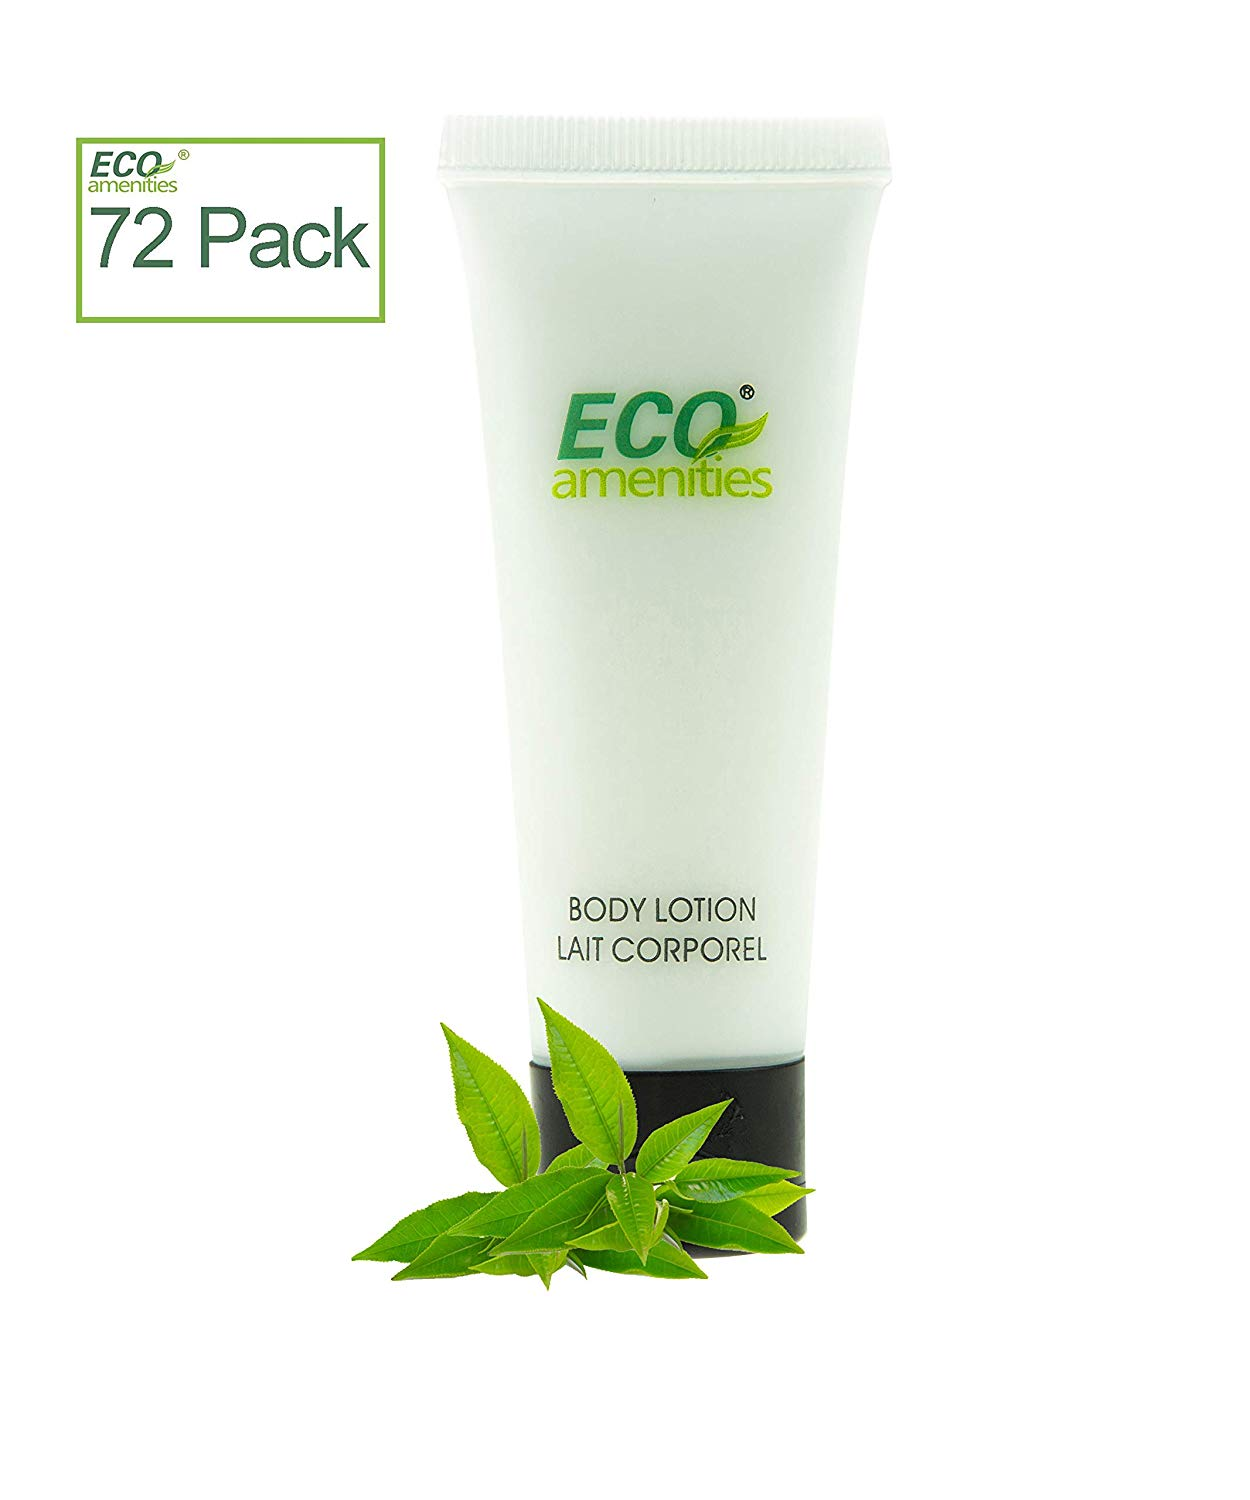 72 Tubes per Case, ECO AMENITIES Transparent Tube Flip Cap Individually Wrapped 30ml Body Lotion